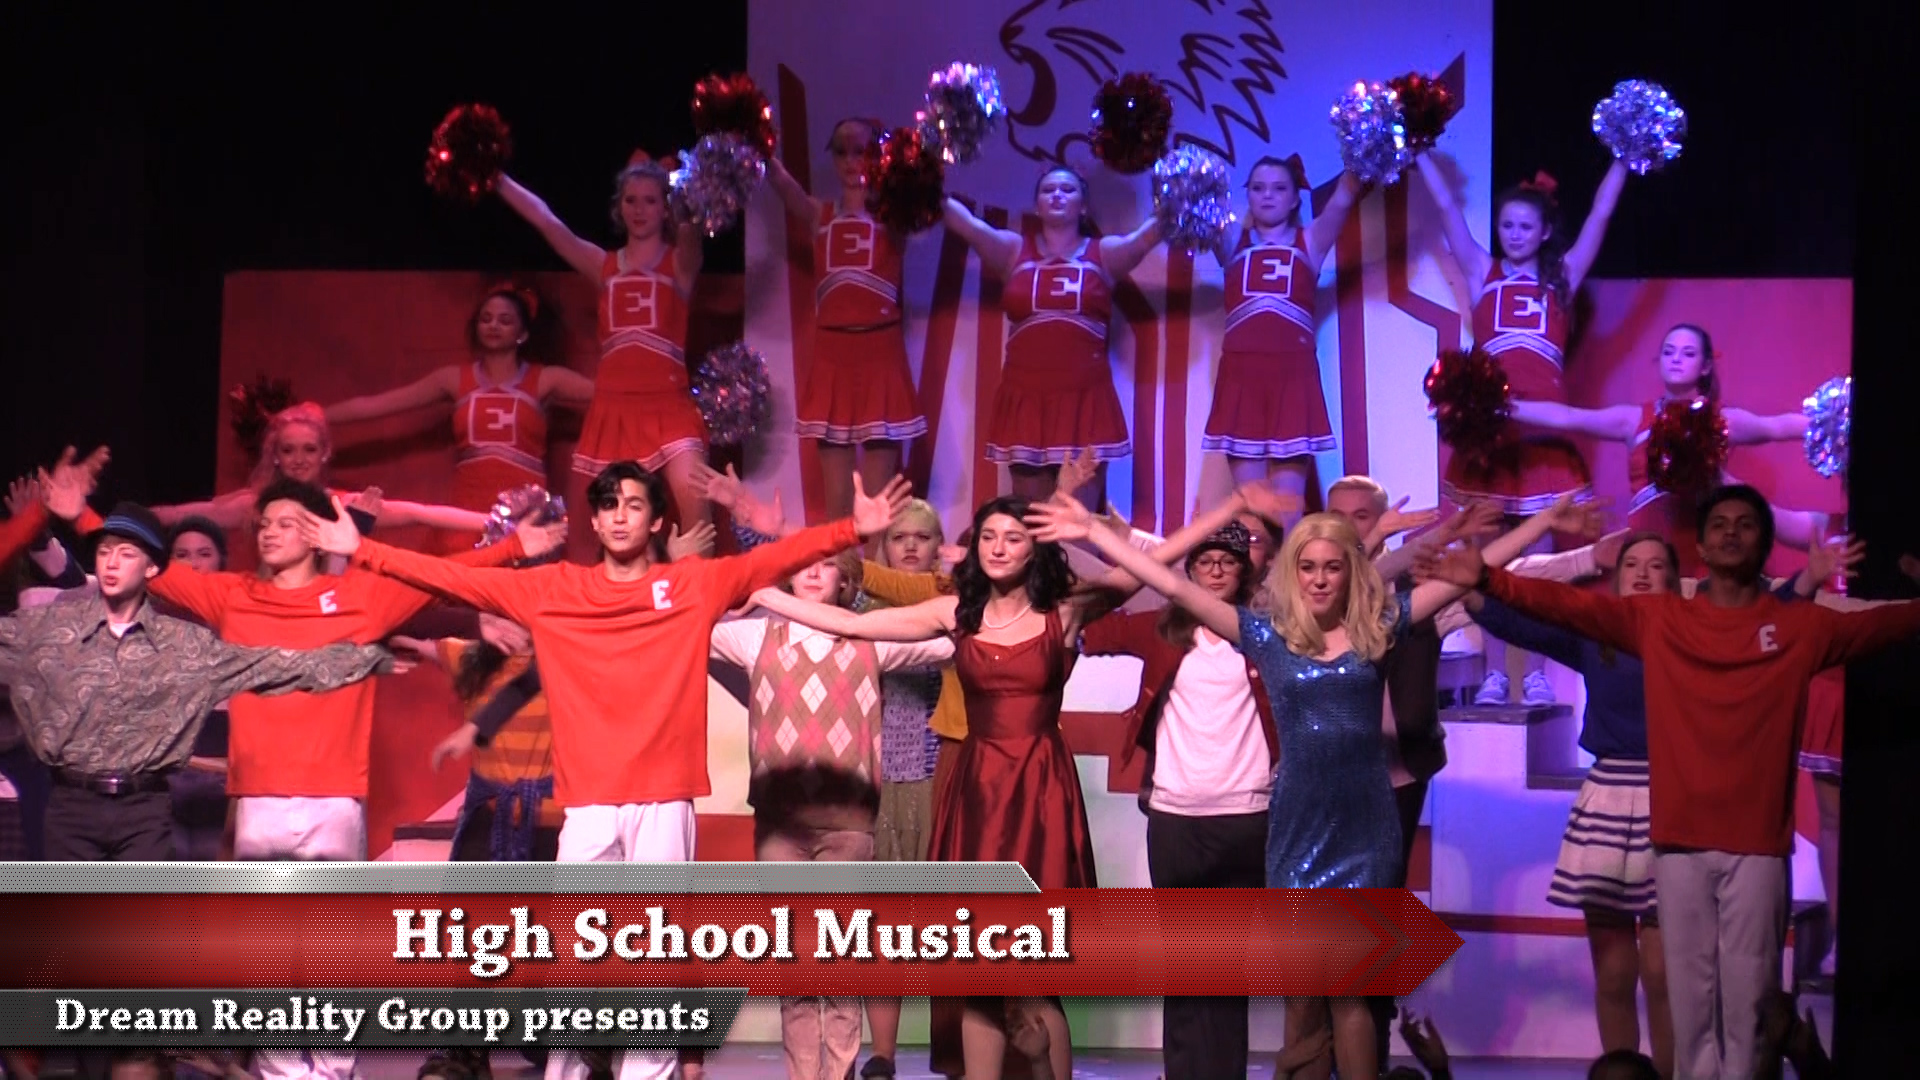 VIDEO - High School Musical plays at the Park